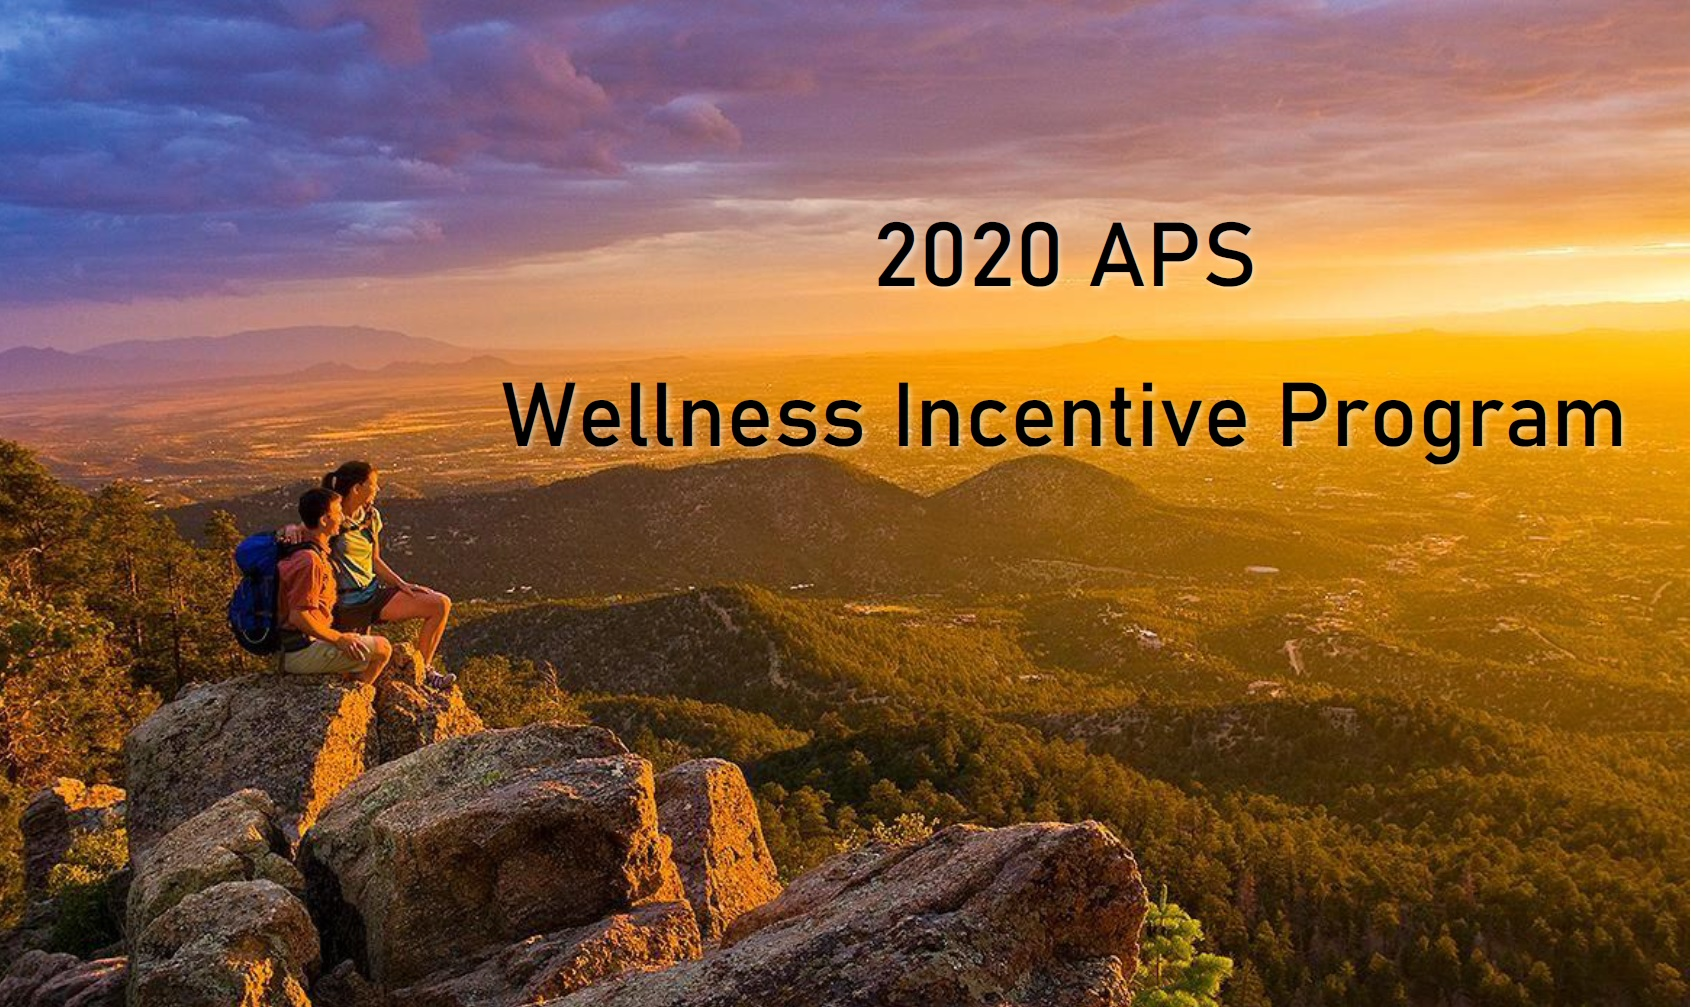 2020 APS Emplyee wellness incentive picture